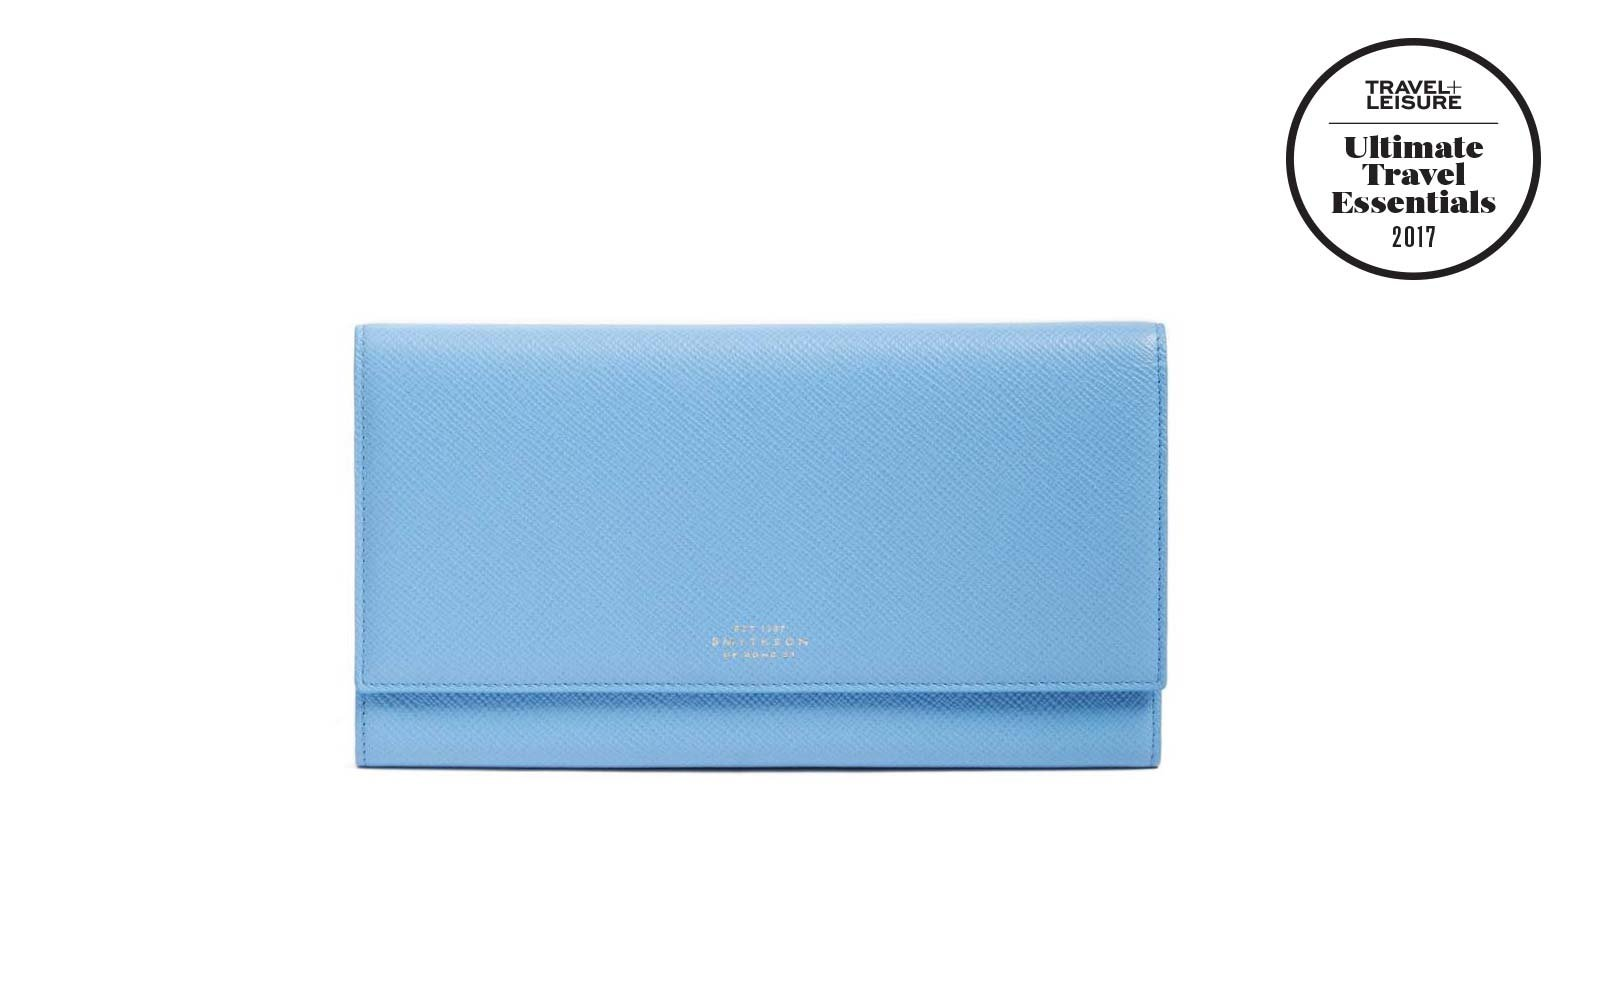 Smythson Travel Wallet